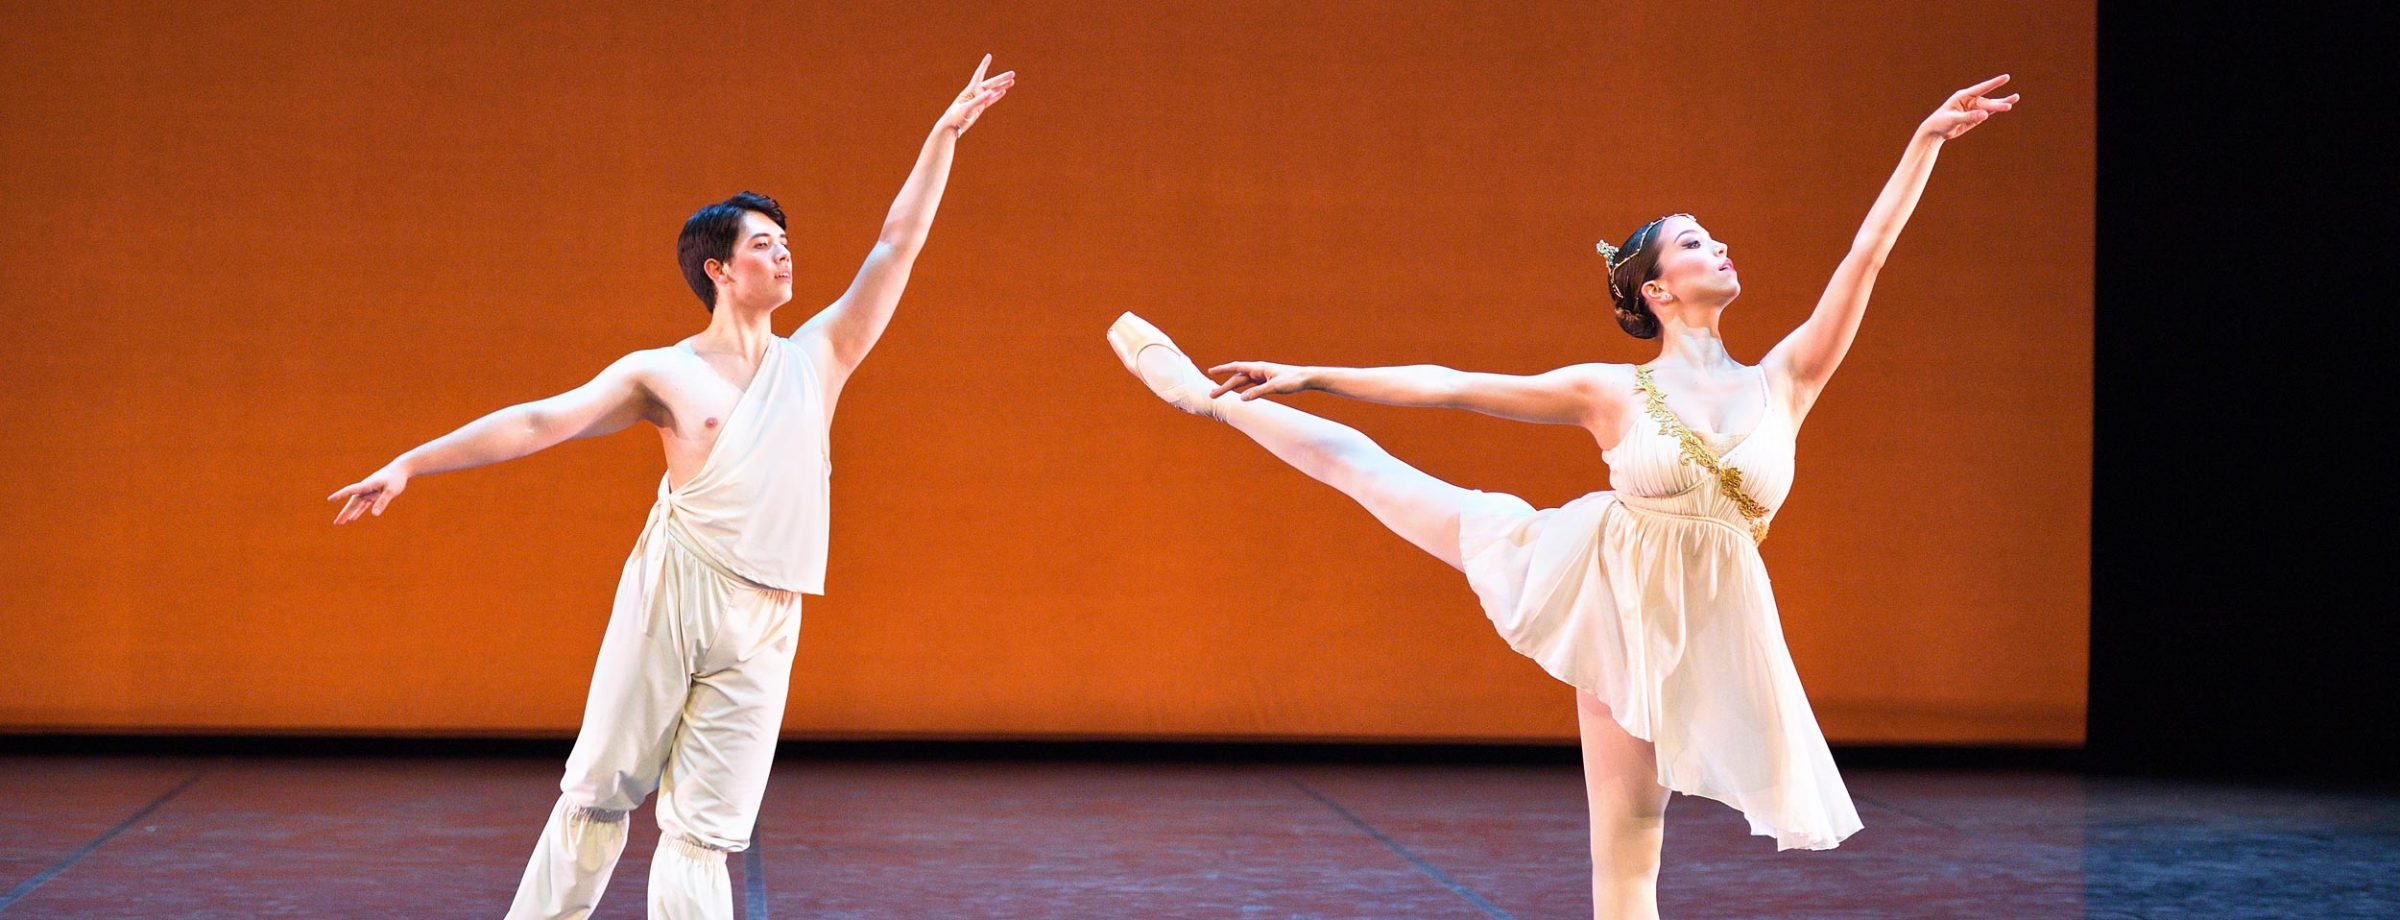 William Yamada and Ivana Bueno performing Talisman pas de deux © Laurent Liotardo